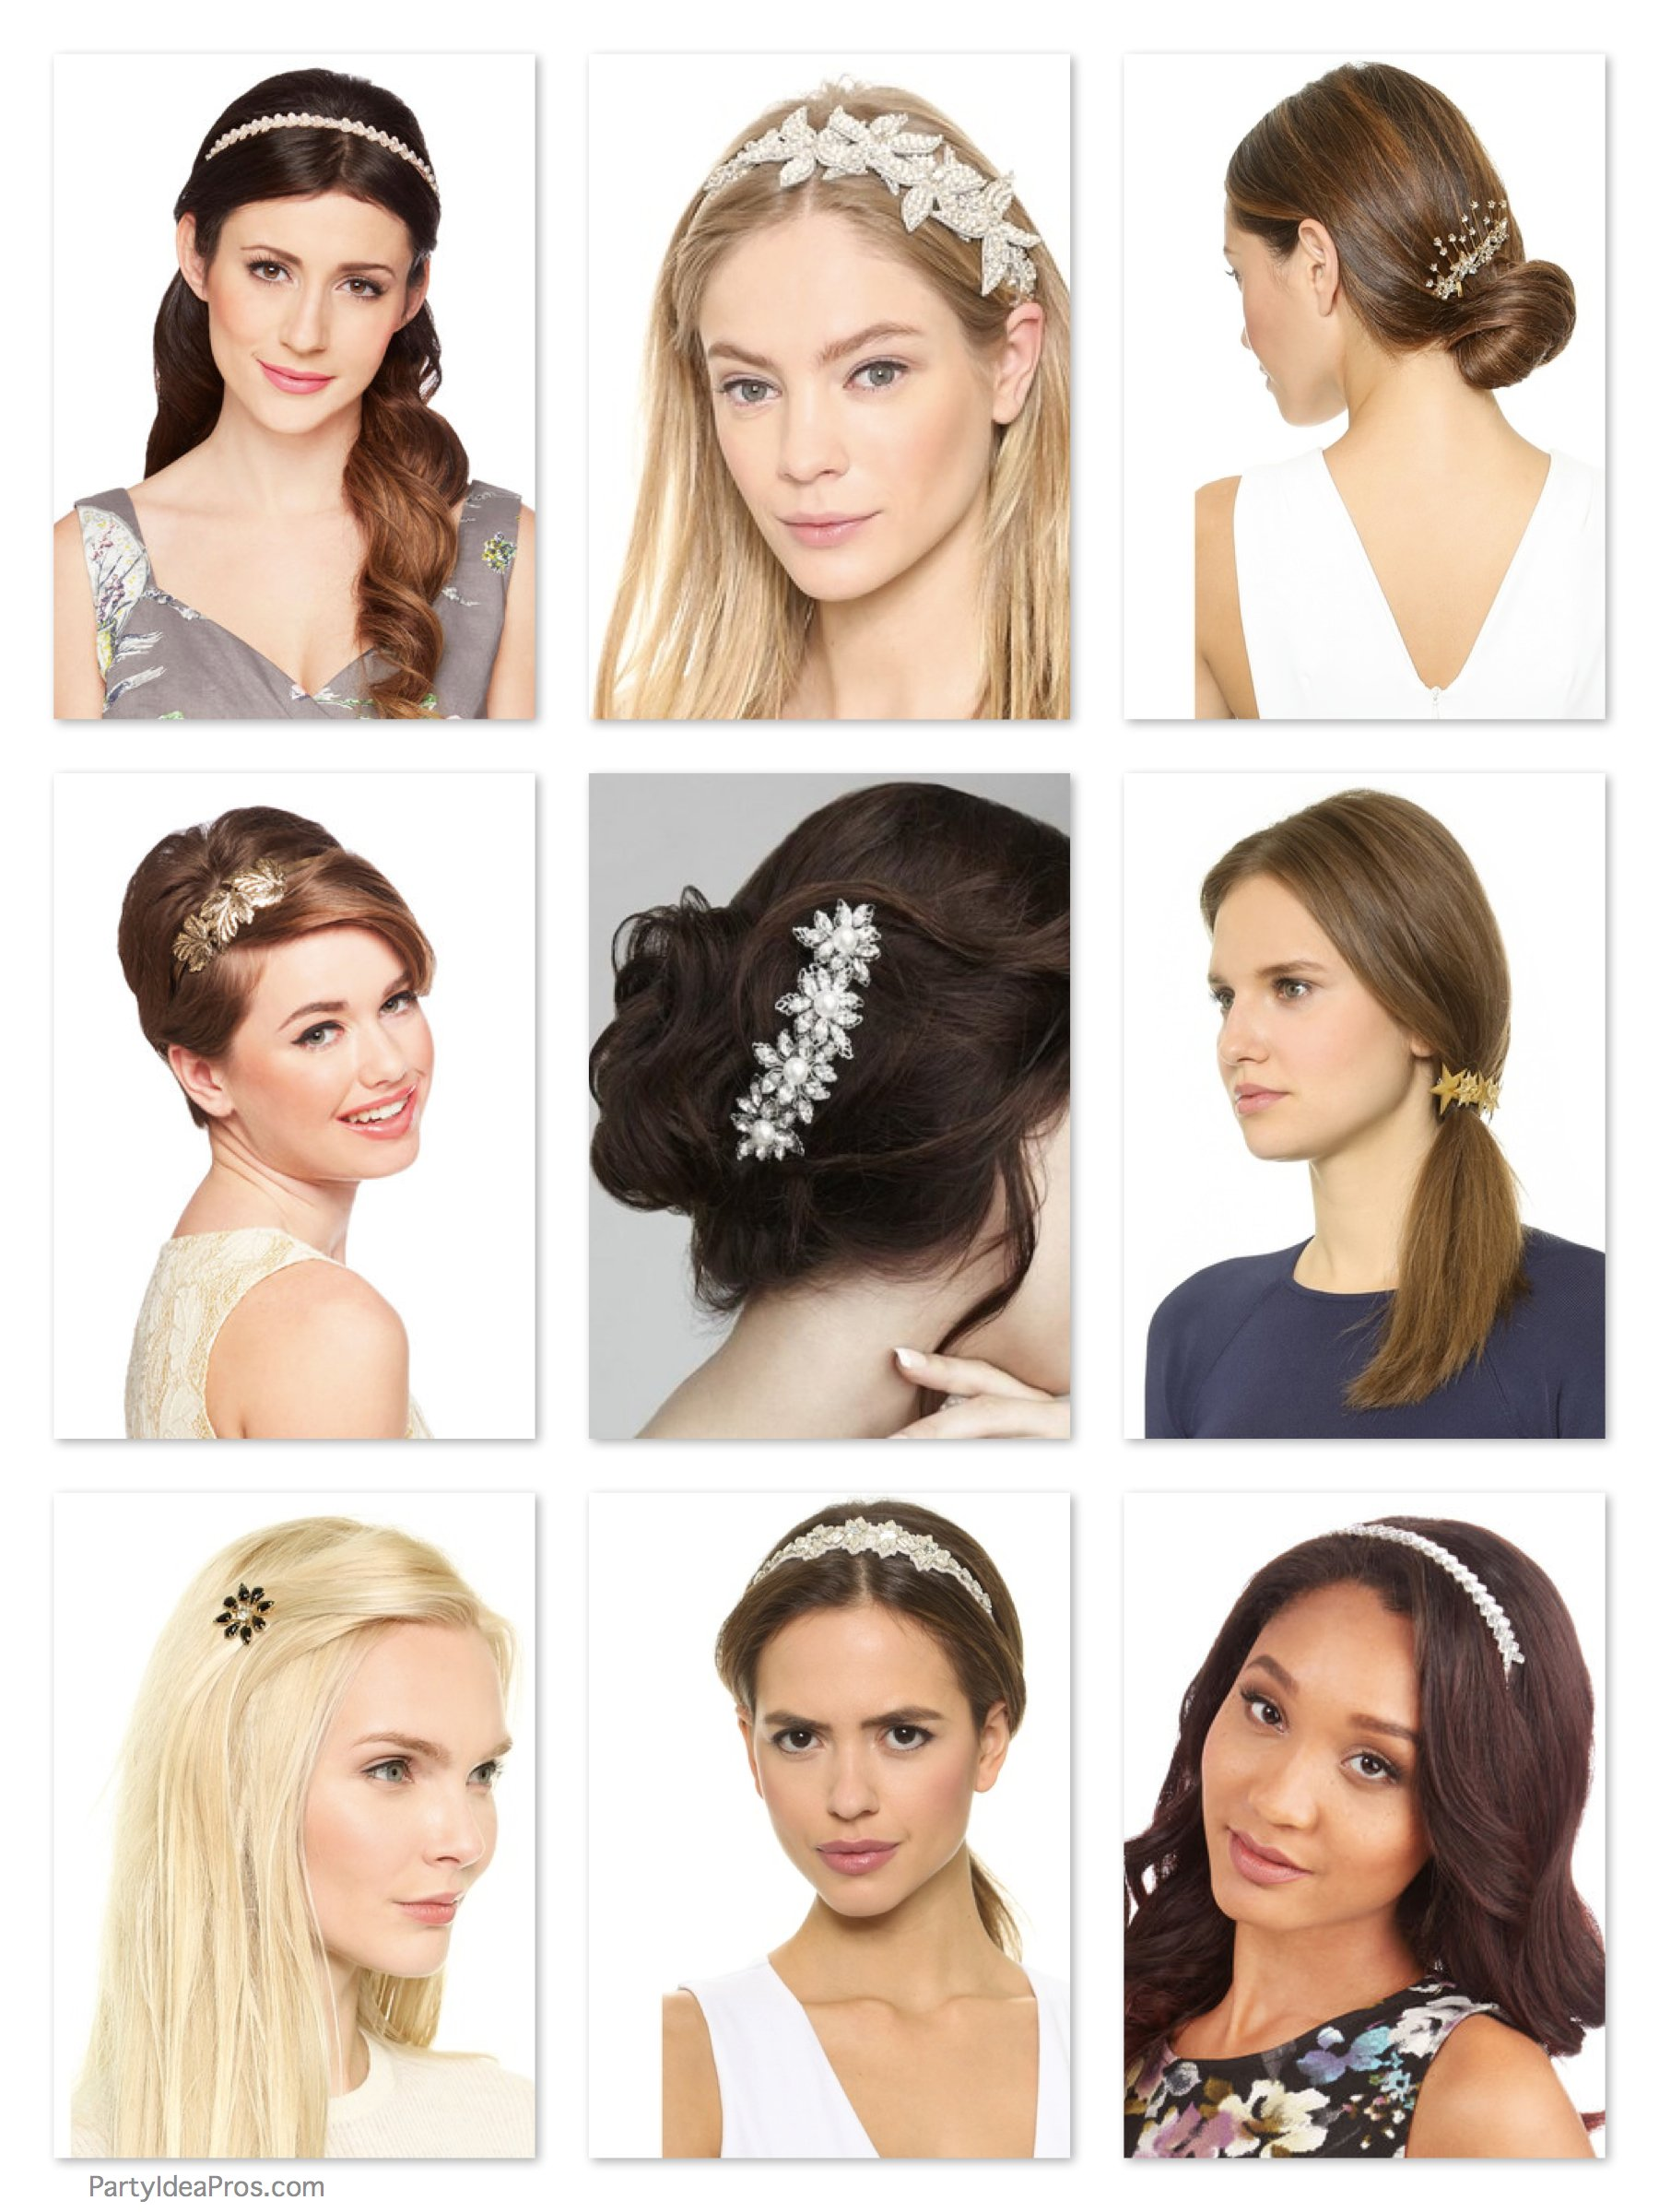 Party Pretty Hair Ornaments, Hair Tricks to Make You Look Years Younger